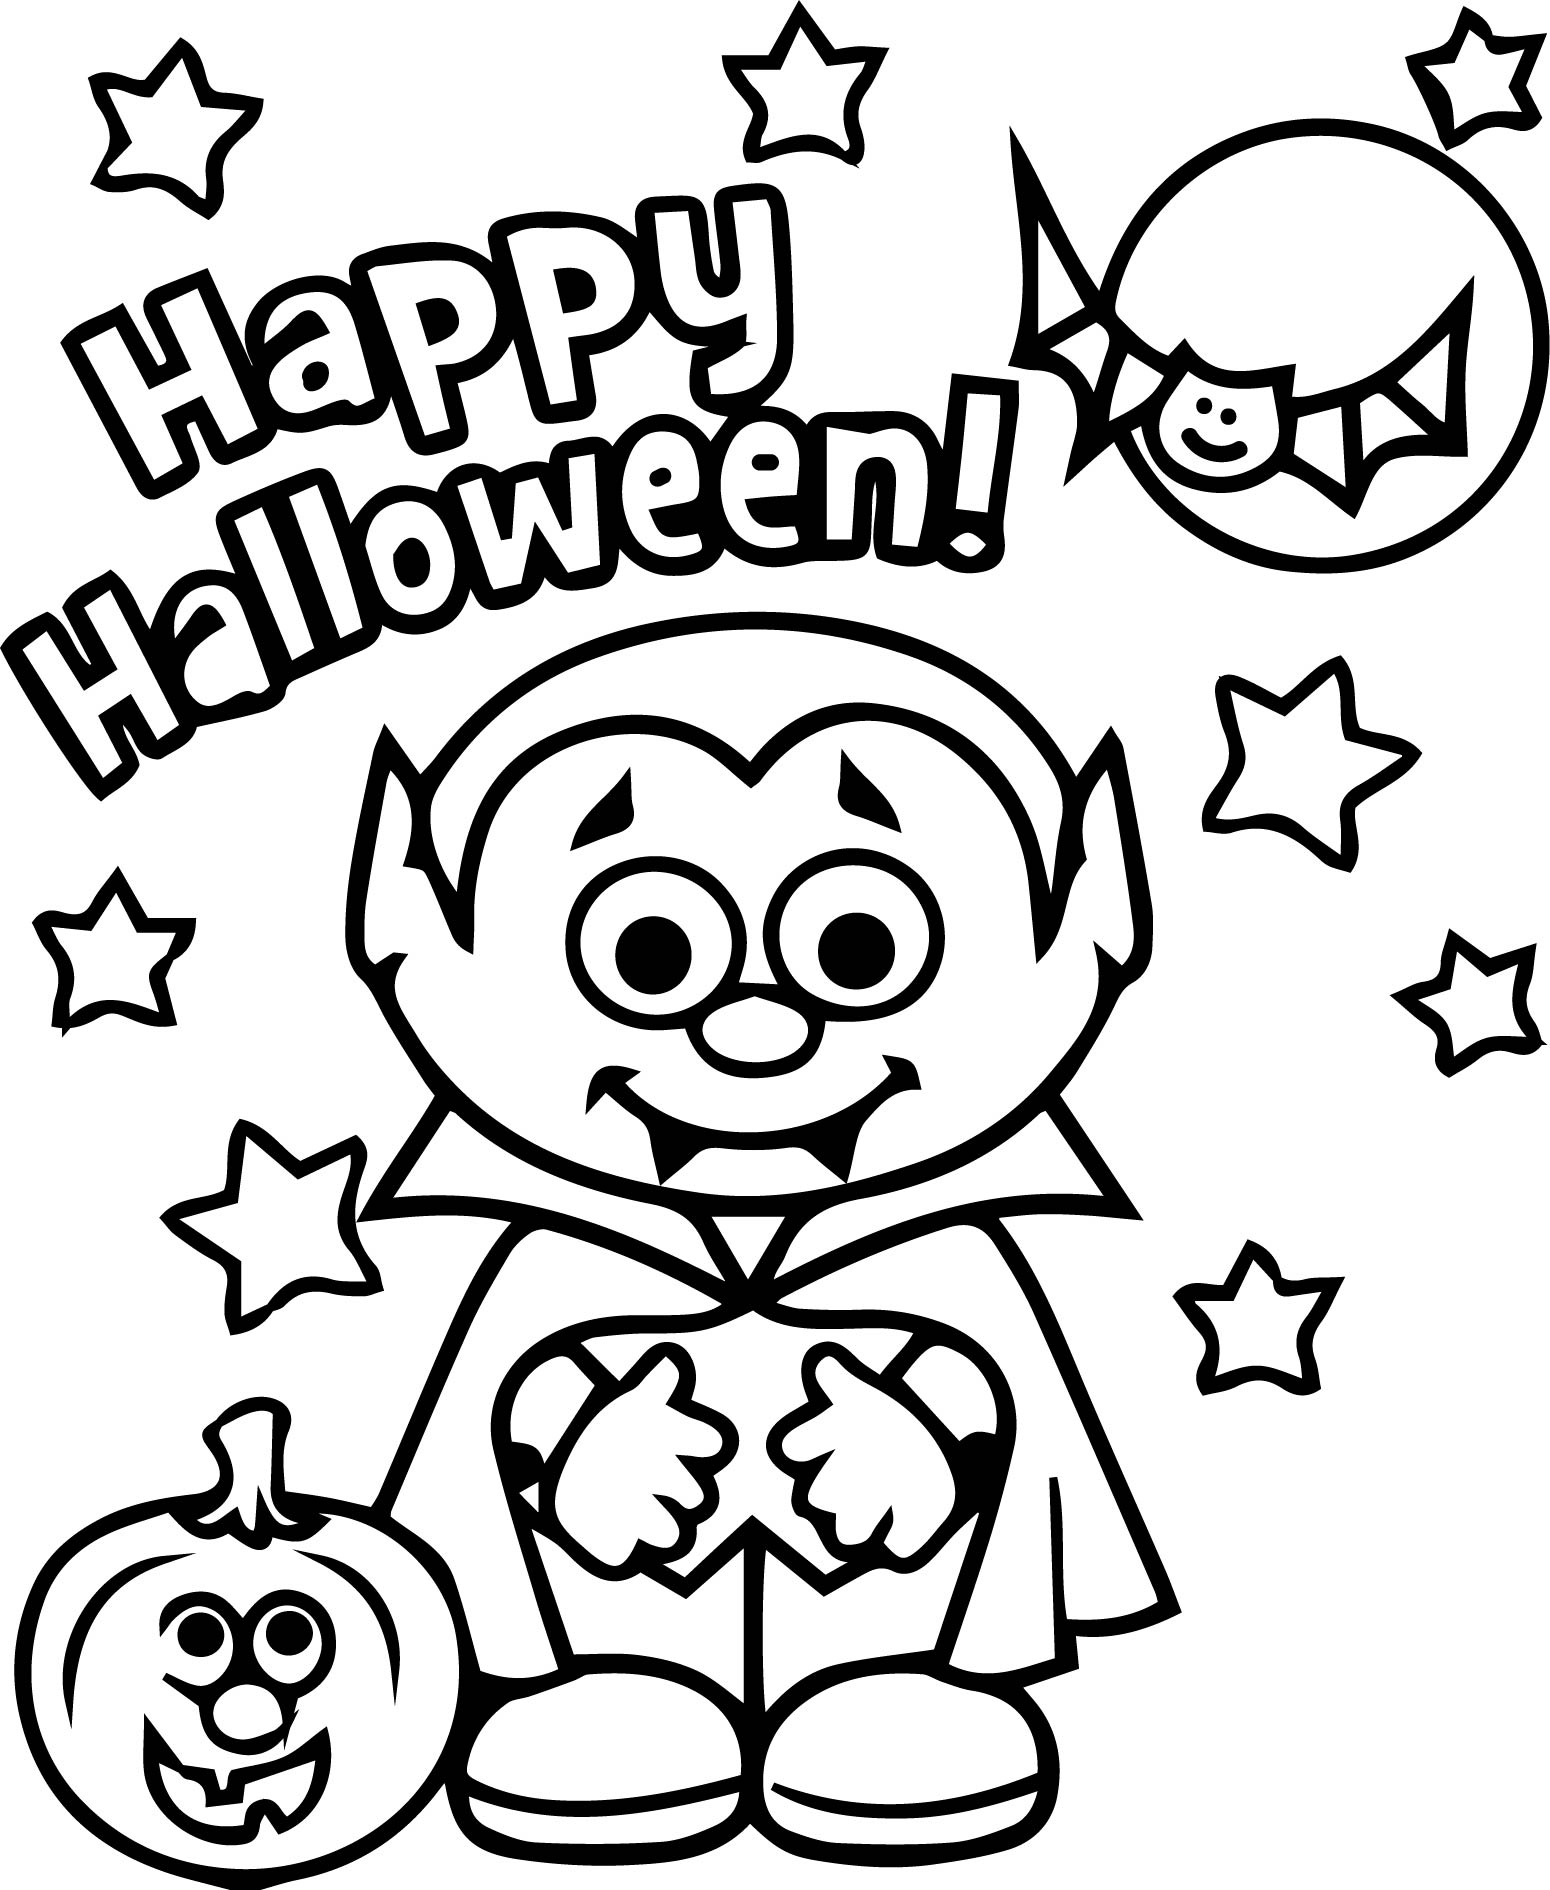 Vampire Best Happy Halloween Coloring Page